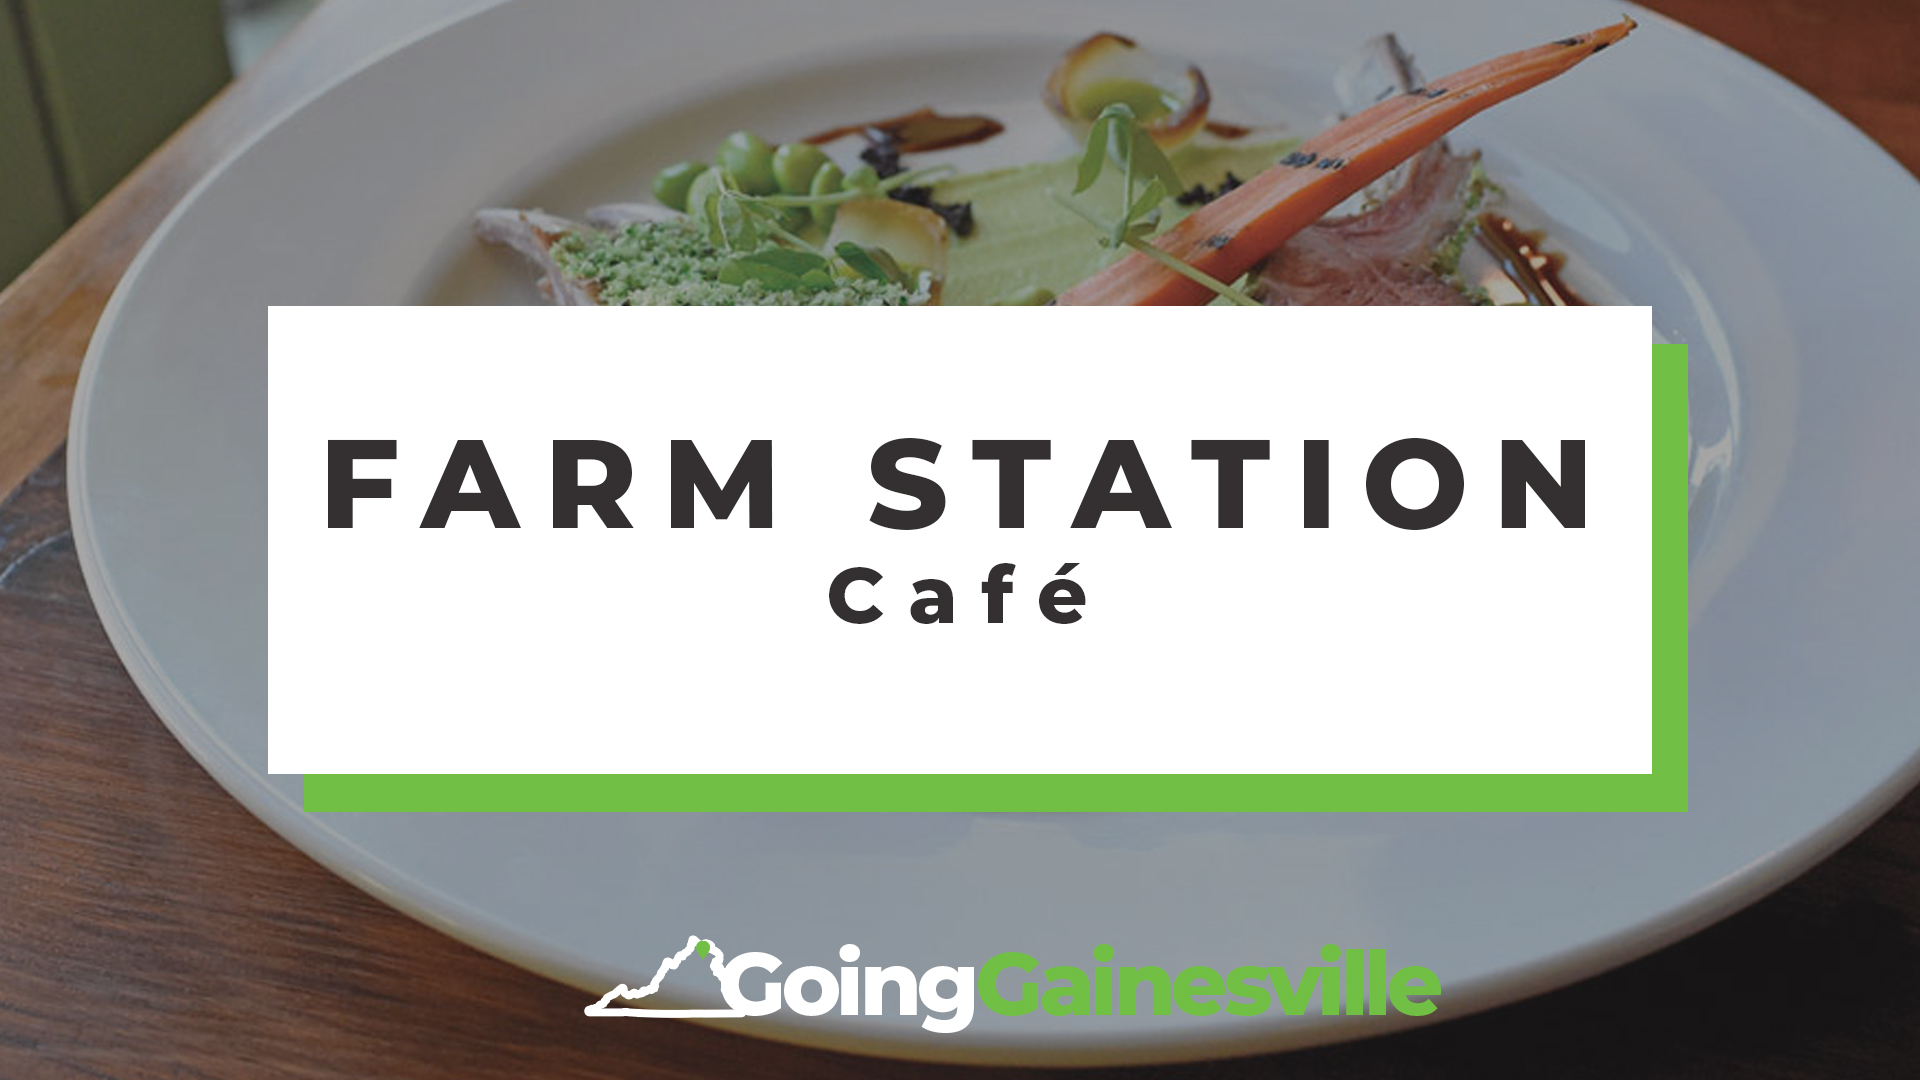 Farm Station Cafe